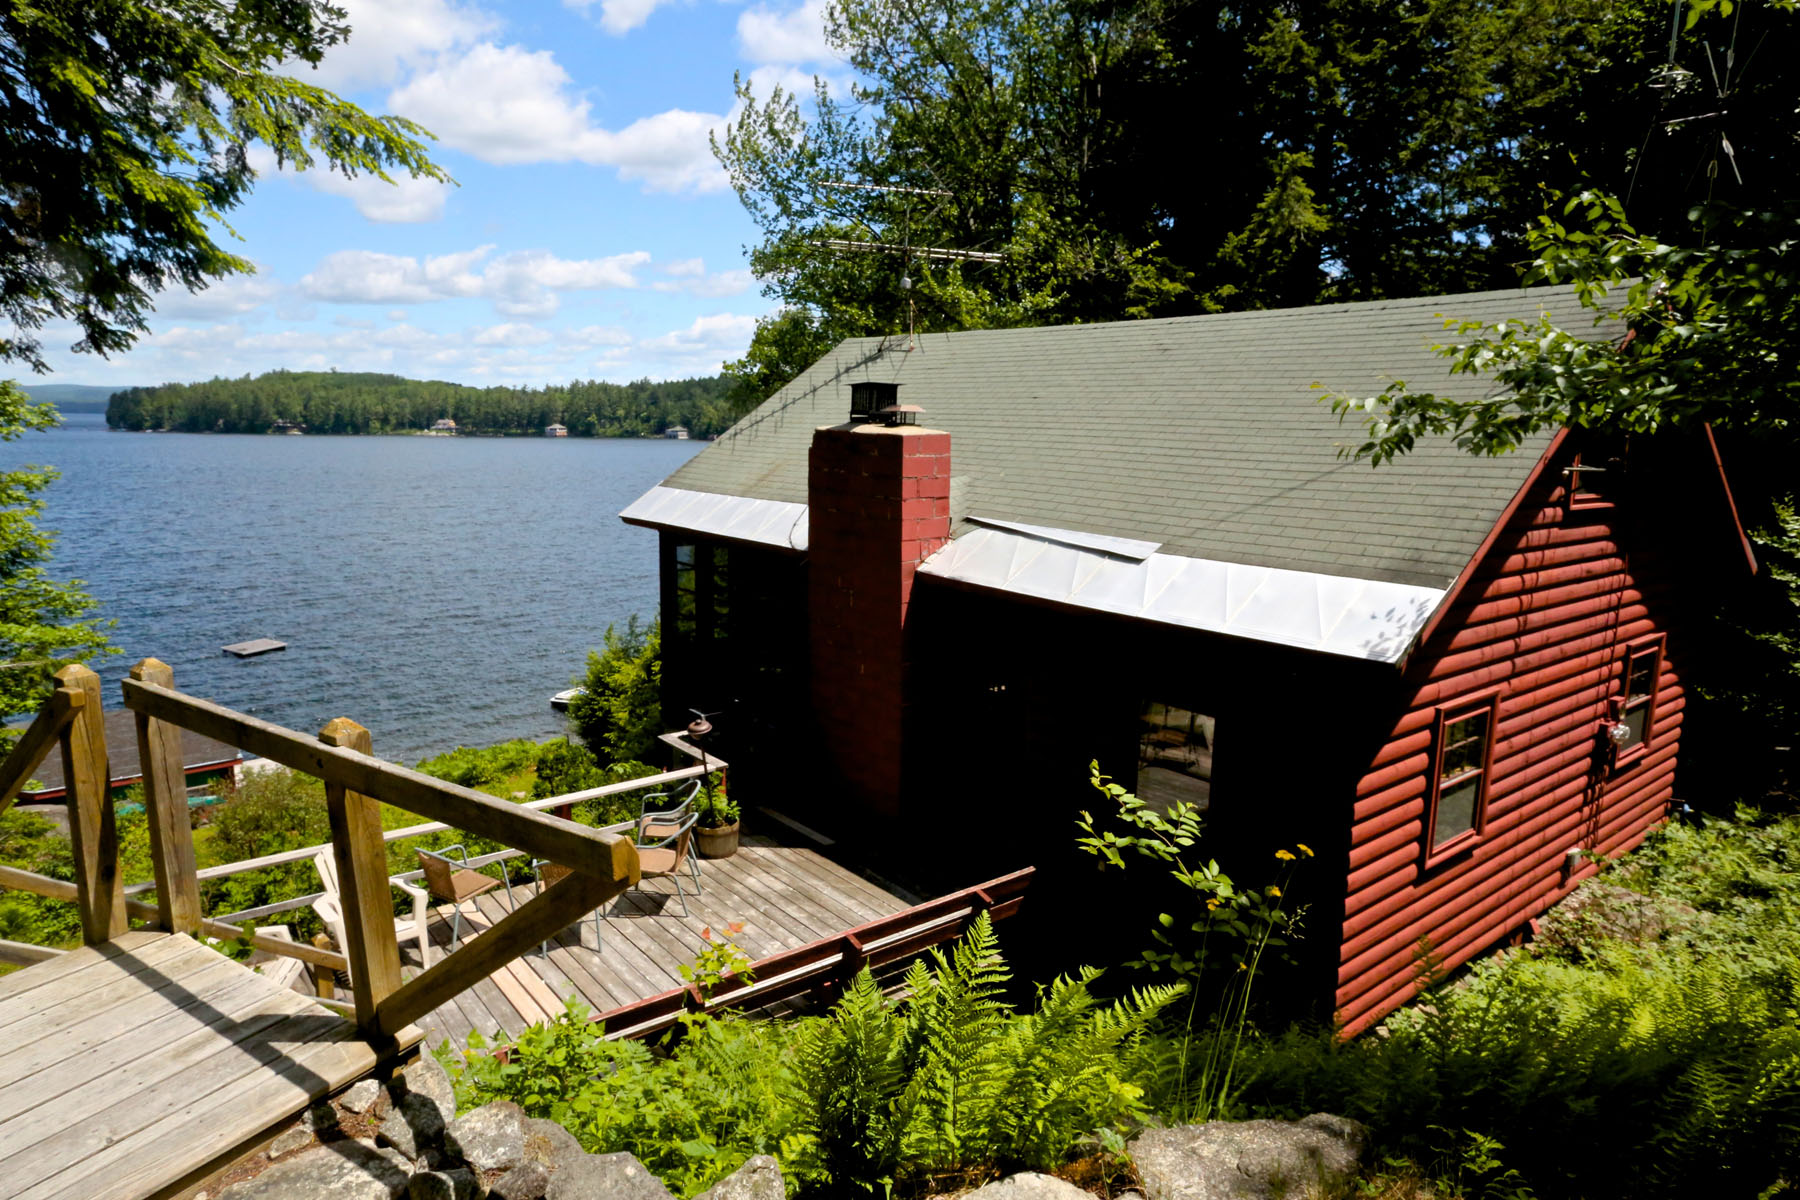 Single Family Home for Sale at Lake Sunapee Waterfront Home 328 Bay Point Rd Sunapee, New Hampshire 03782 United States